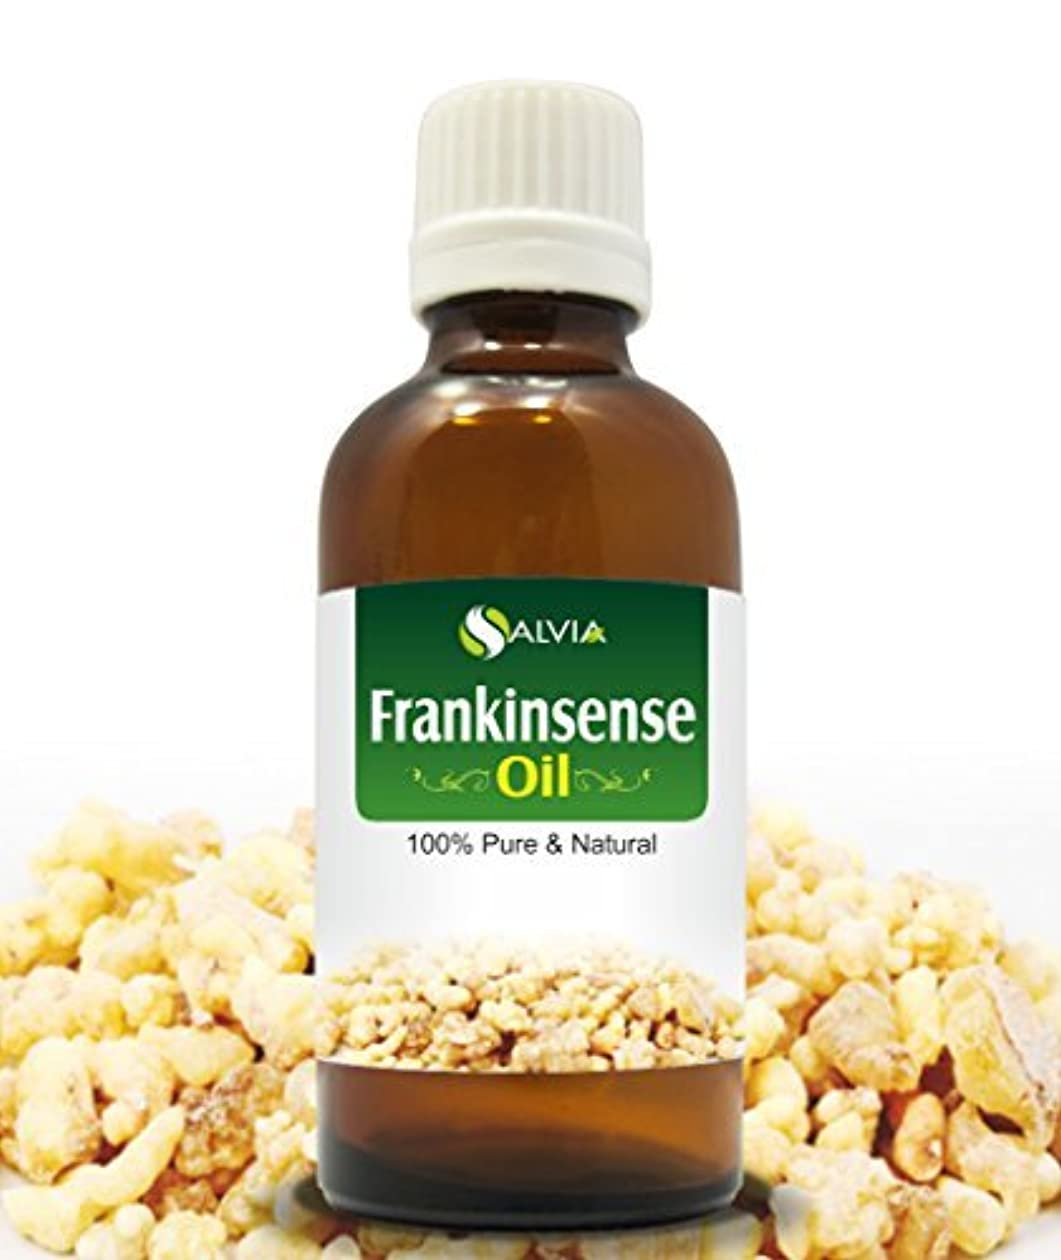 政治家の変更シェードFRANKINCENSE OIL 100% NATURAL PURE UNDILUTED UNCUT ESSENTIAL OILS 100ML by SALVIA